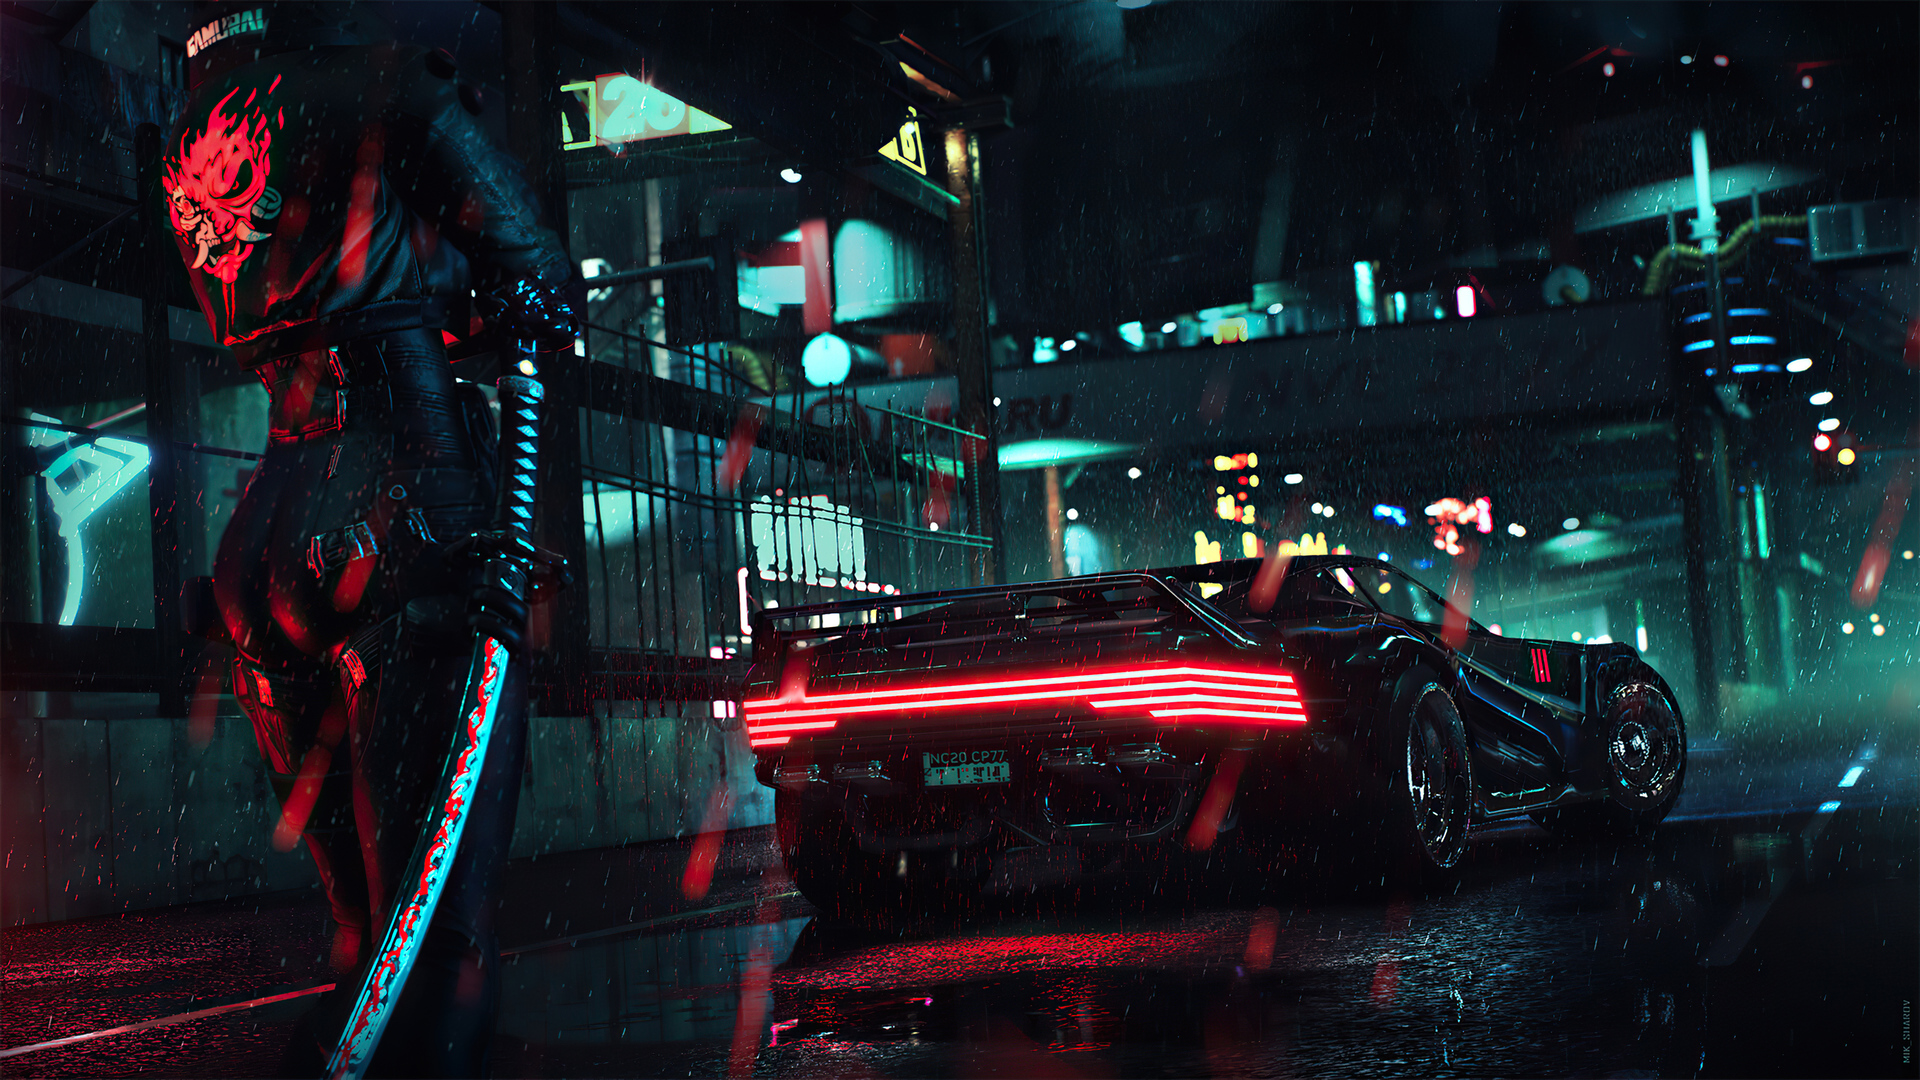 1920x1080 4k Cyberpunk 2077 Ps Game Laptop Full Hd 1080p Hd 4k Wallpapers Images Backgrounds Photos And Pictures